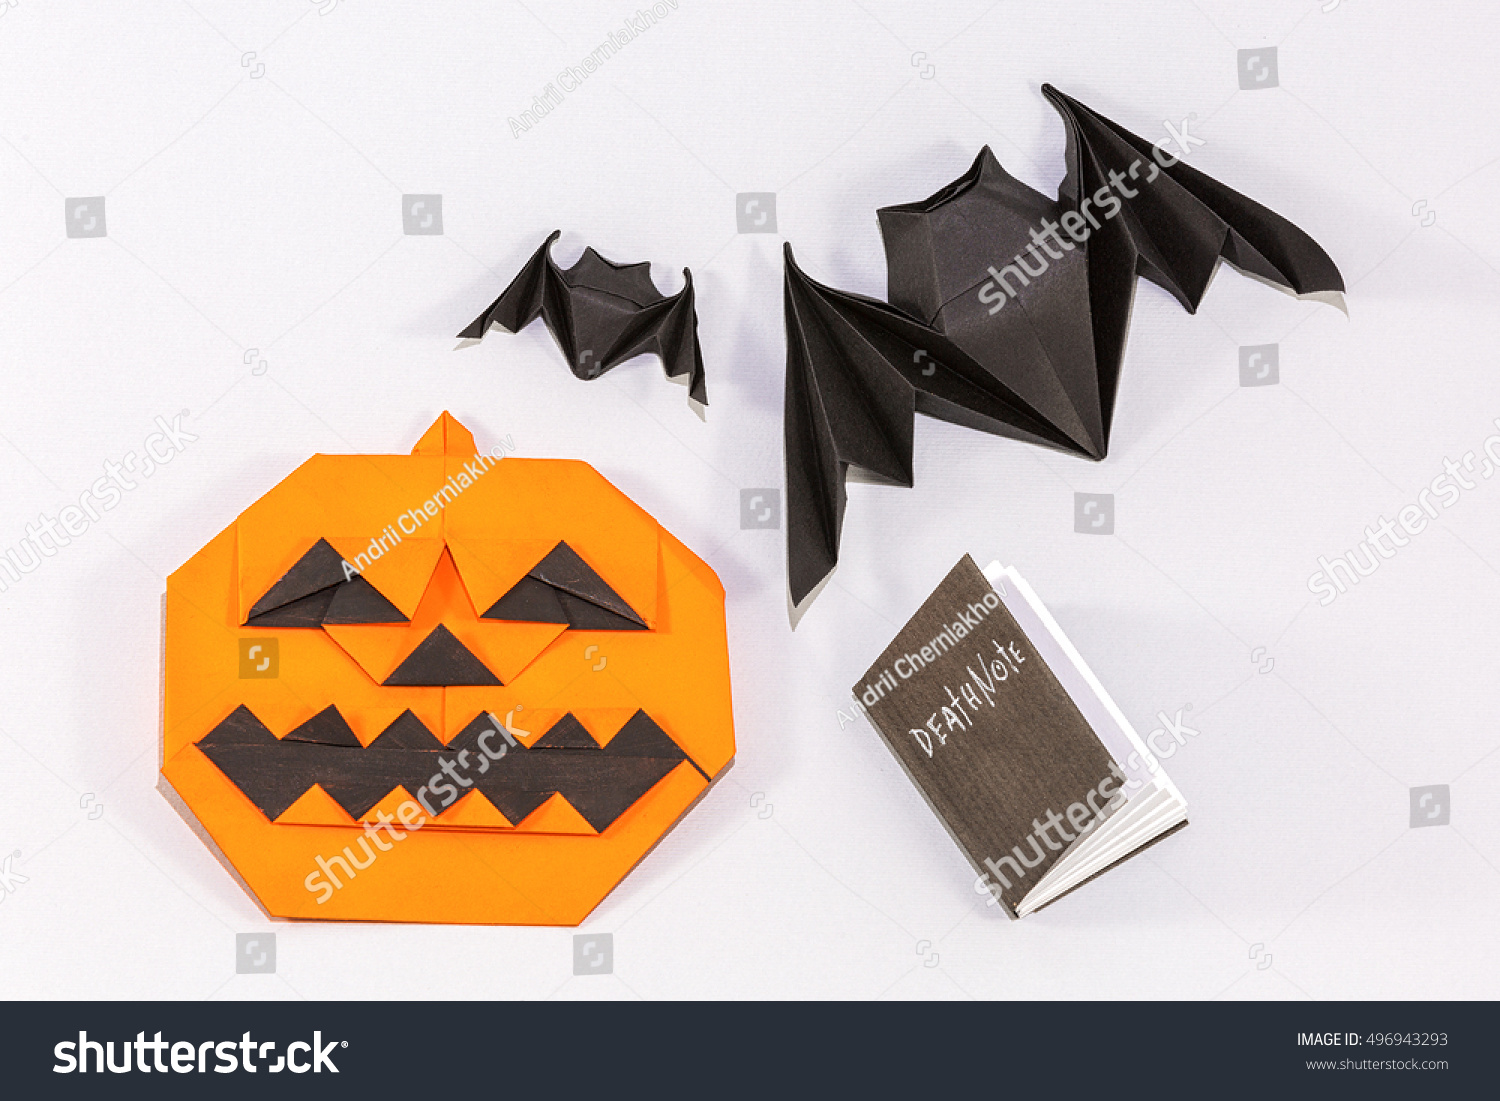 Halloween origami pumpkin jackolantern deaf note stock photo halloween origami pumpkin jack o lantern with deaf note and bats jeuxipadfo Gallery